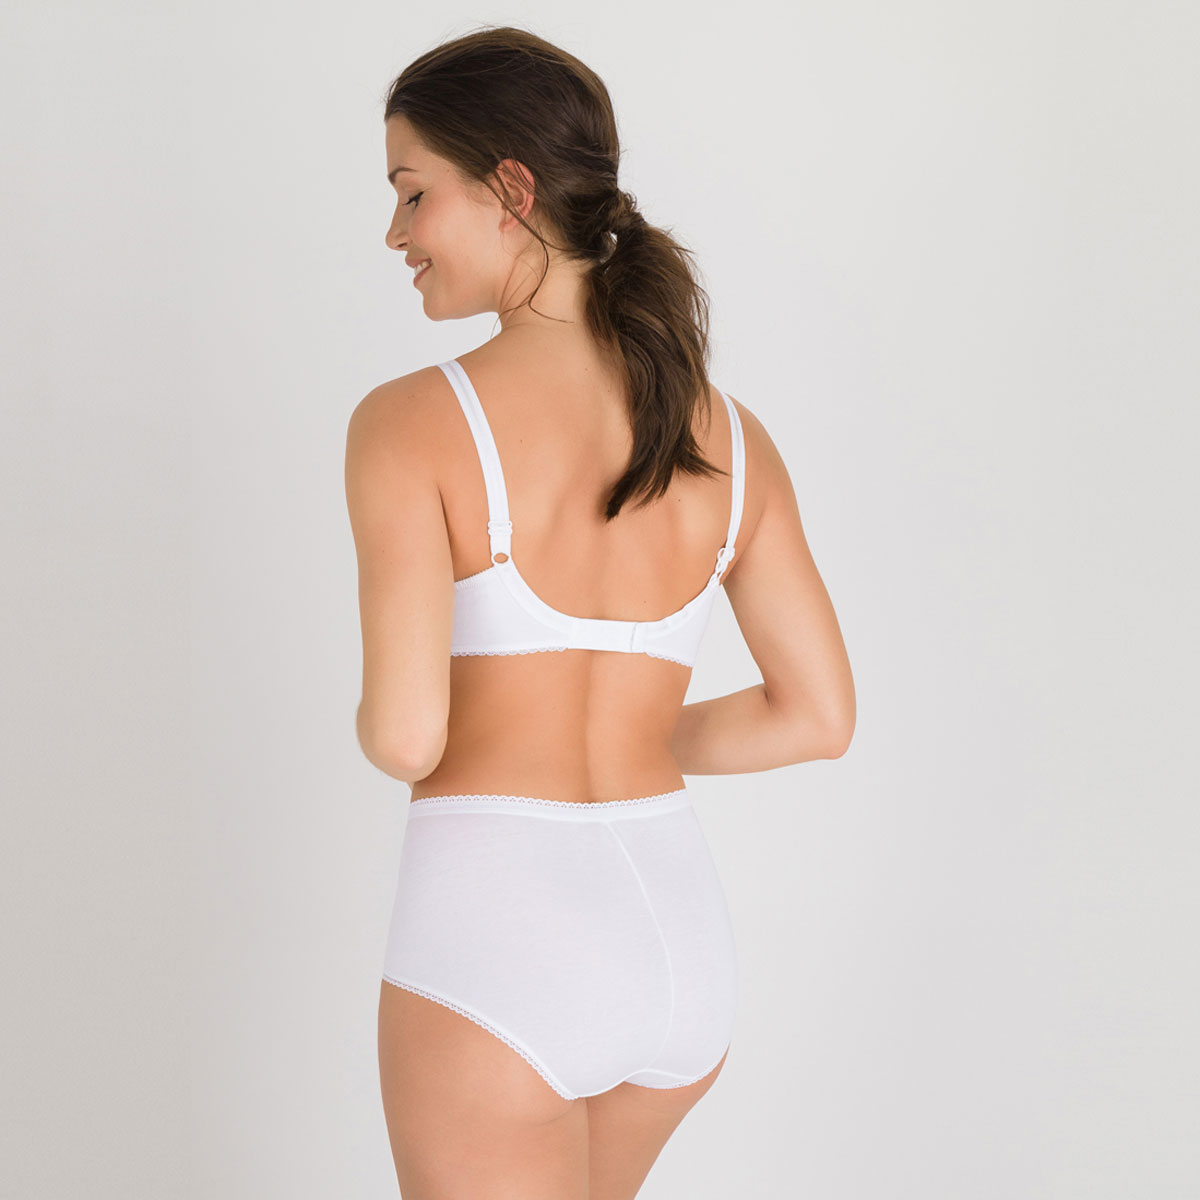 3 Culottes Maxi blanches – Coton & Dentelle, , PLAYTEX